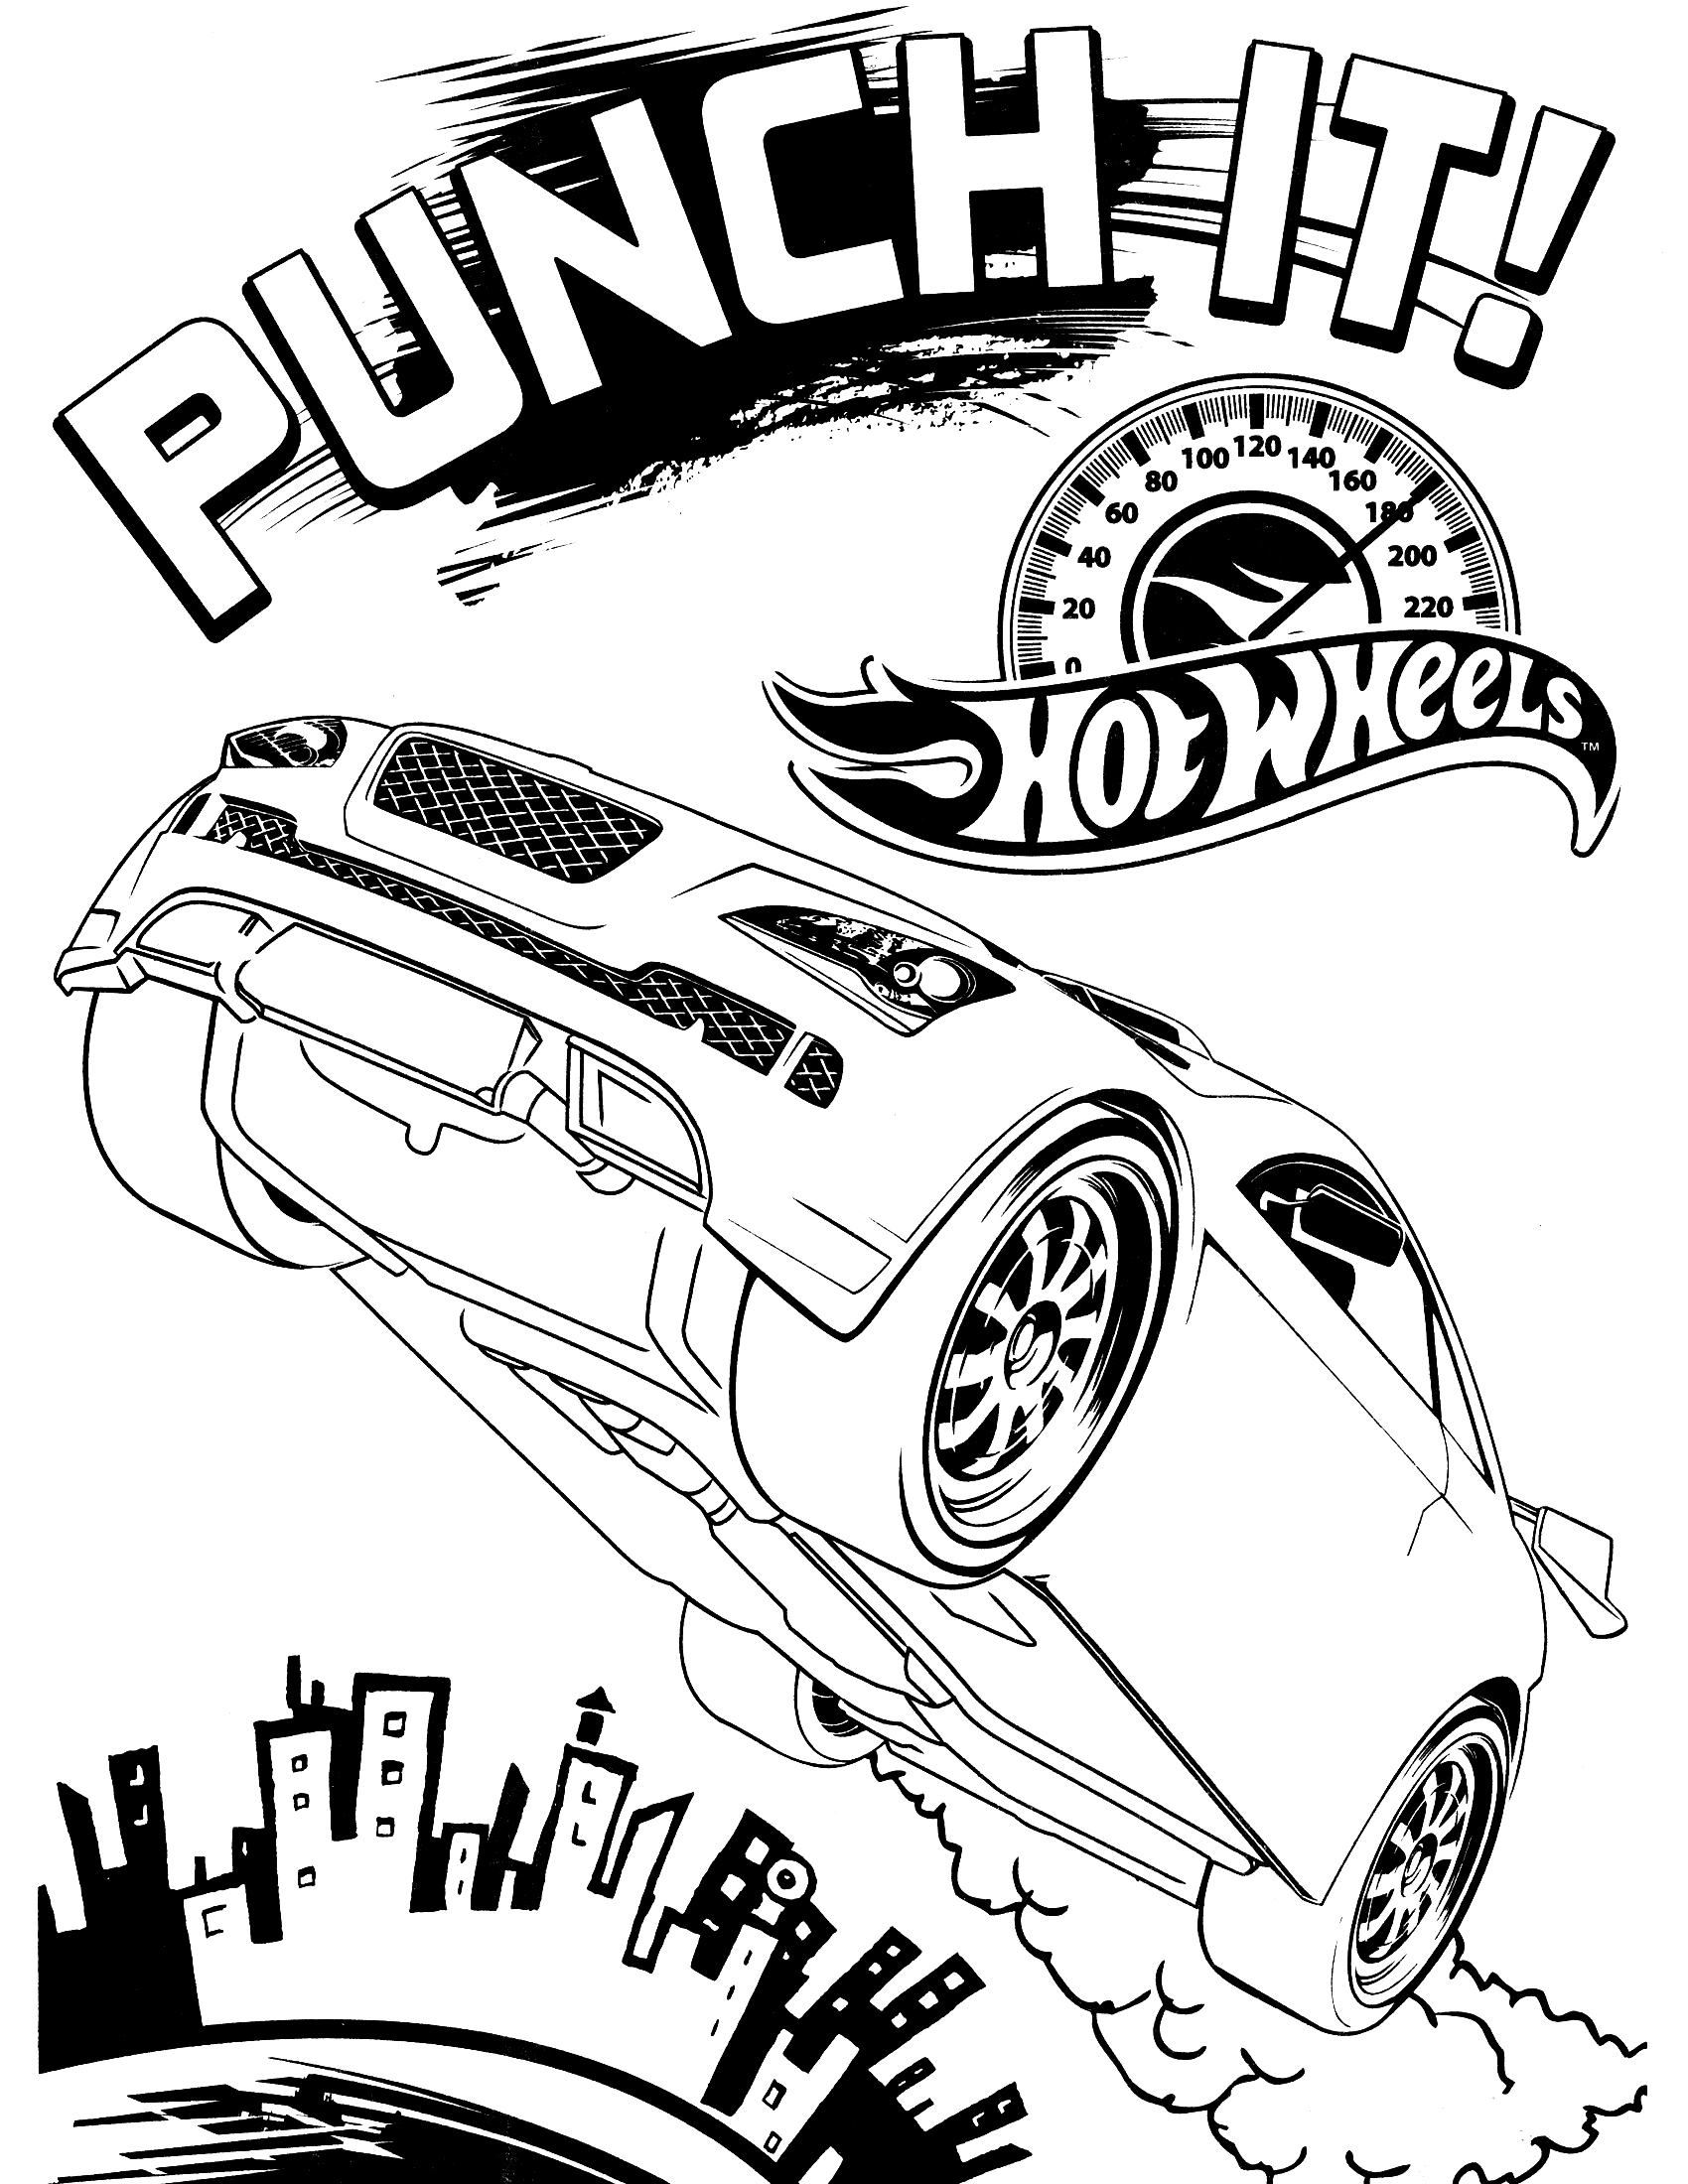 Coloring pages for hot wheels - Printable Hot Wheel Coloring Pages